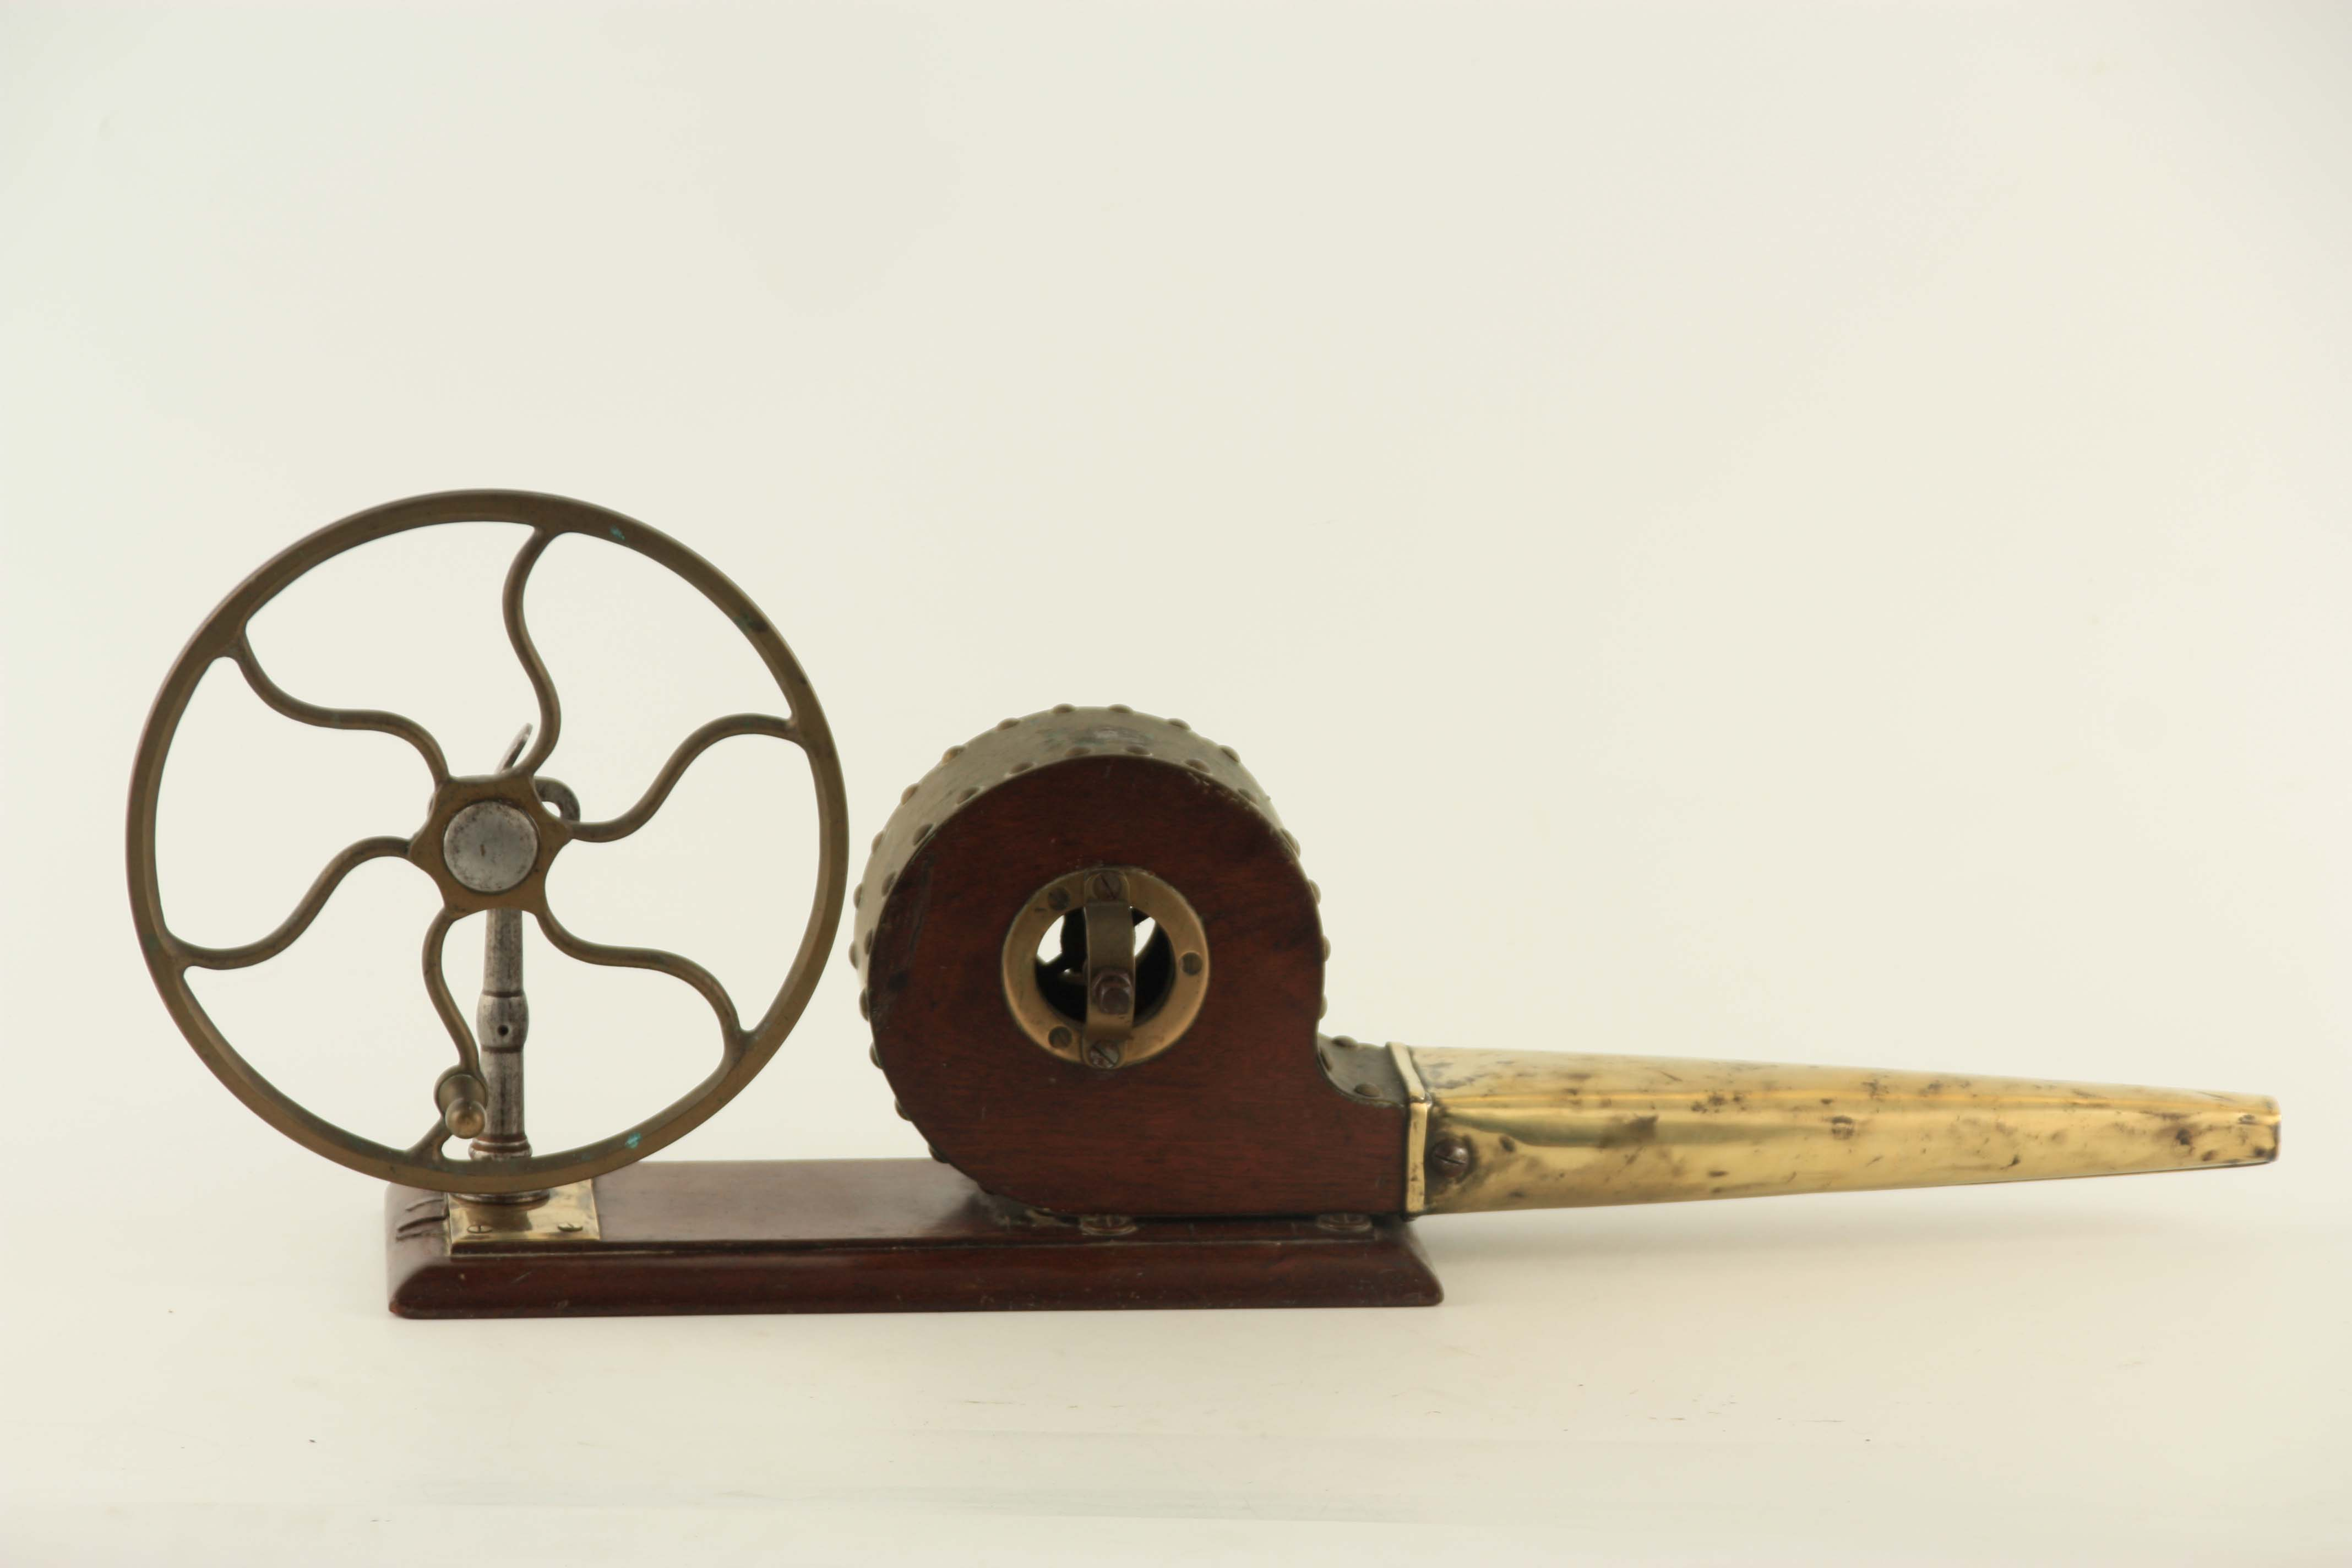 AN EARLY 19TH CENTURY SET OF FIRE BELLOWS with six spoke wheel and funnel, mounted on a mahogany - Image 3 of 3